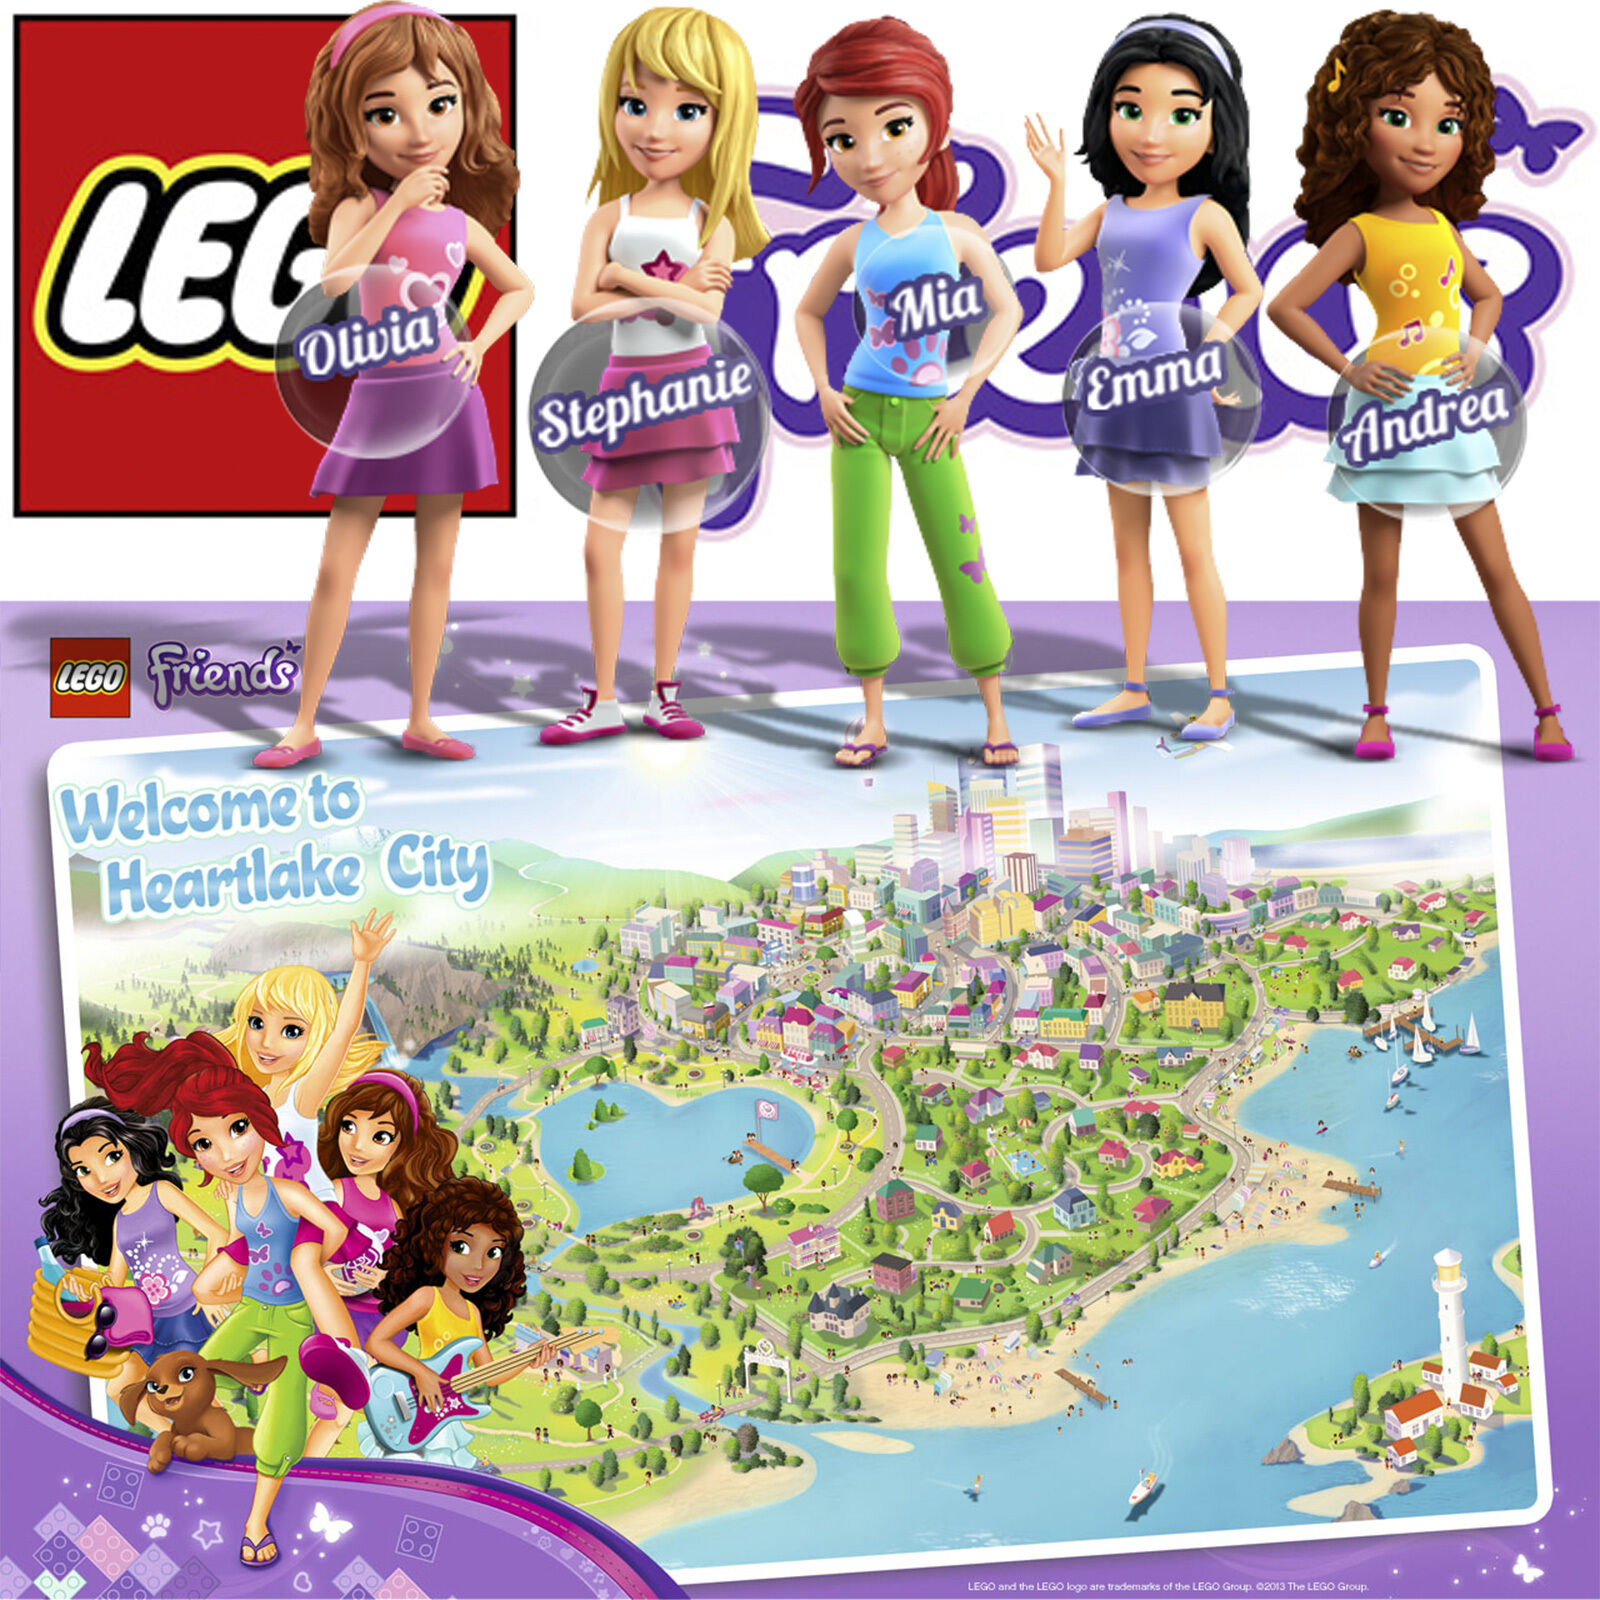 LEGO FRIENDS 41039 41037 41035 41043 41028 41007 41015 41008 41005 41006 3315